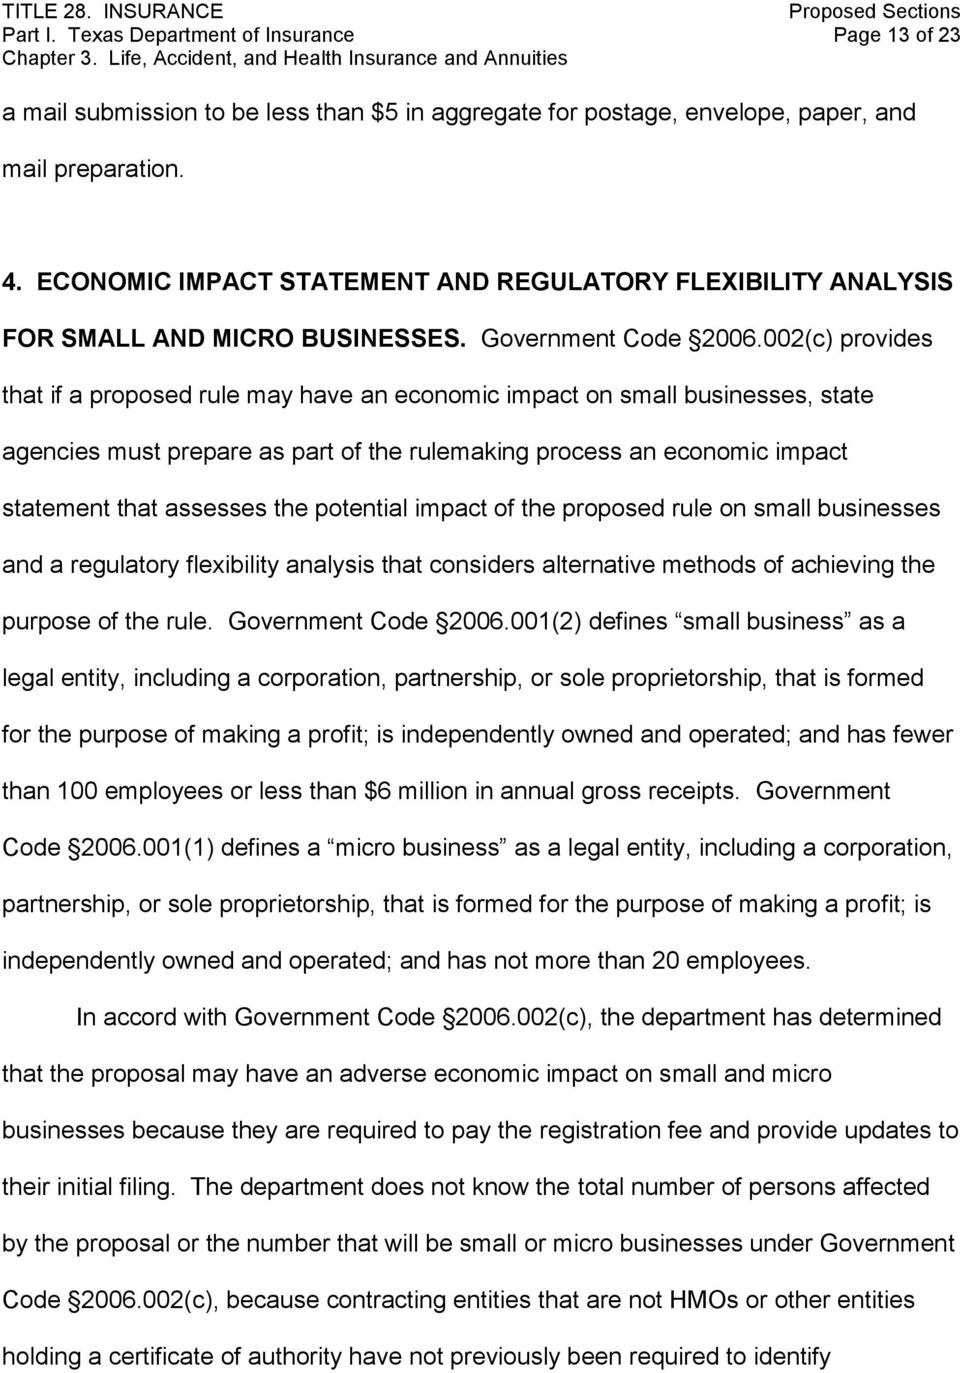 002(c) provides that if a proposed rule may have an economic impact on small businesses, state agencies must prepare as part of the rulemaking process an economic impact statement that assesses the